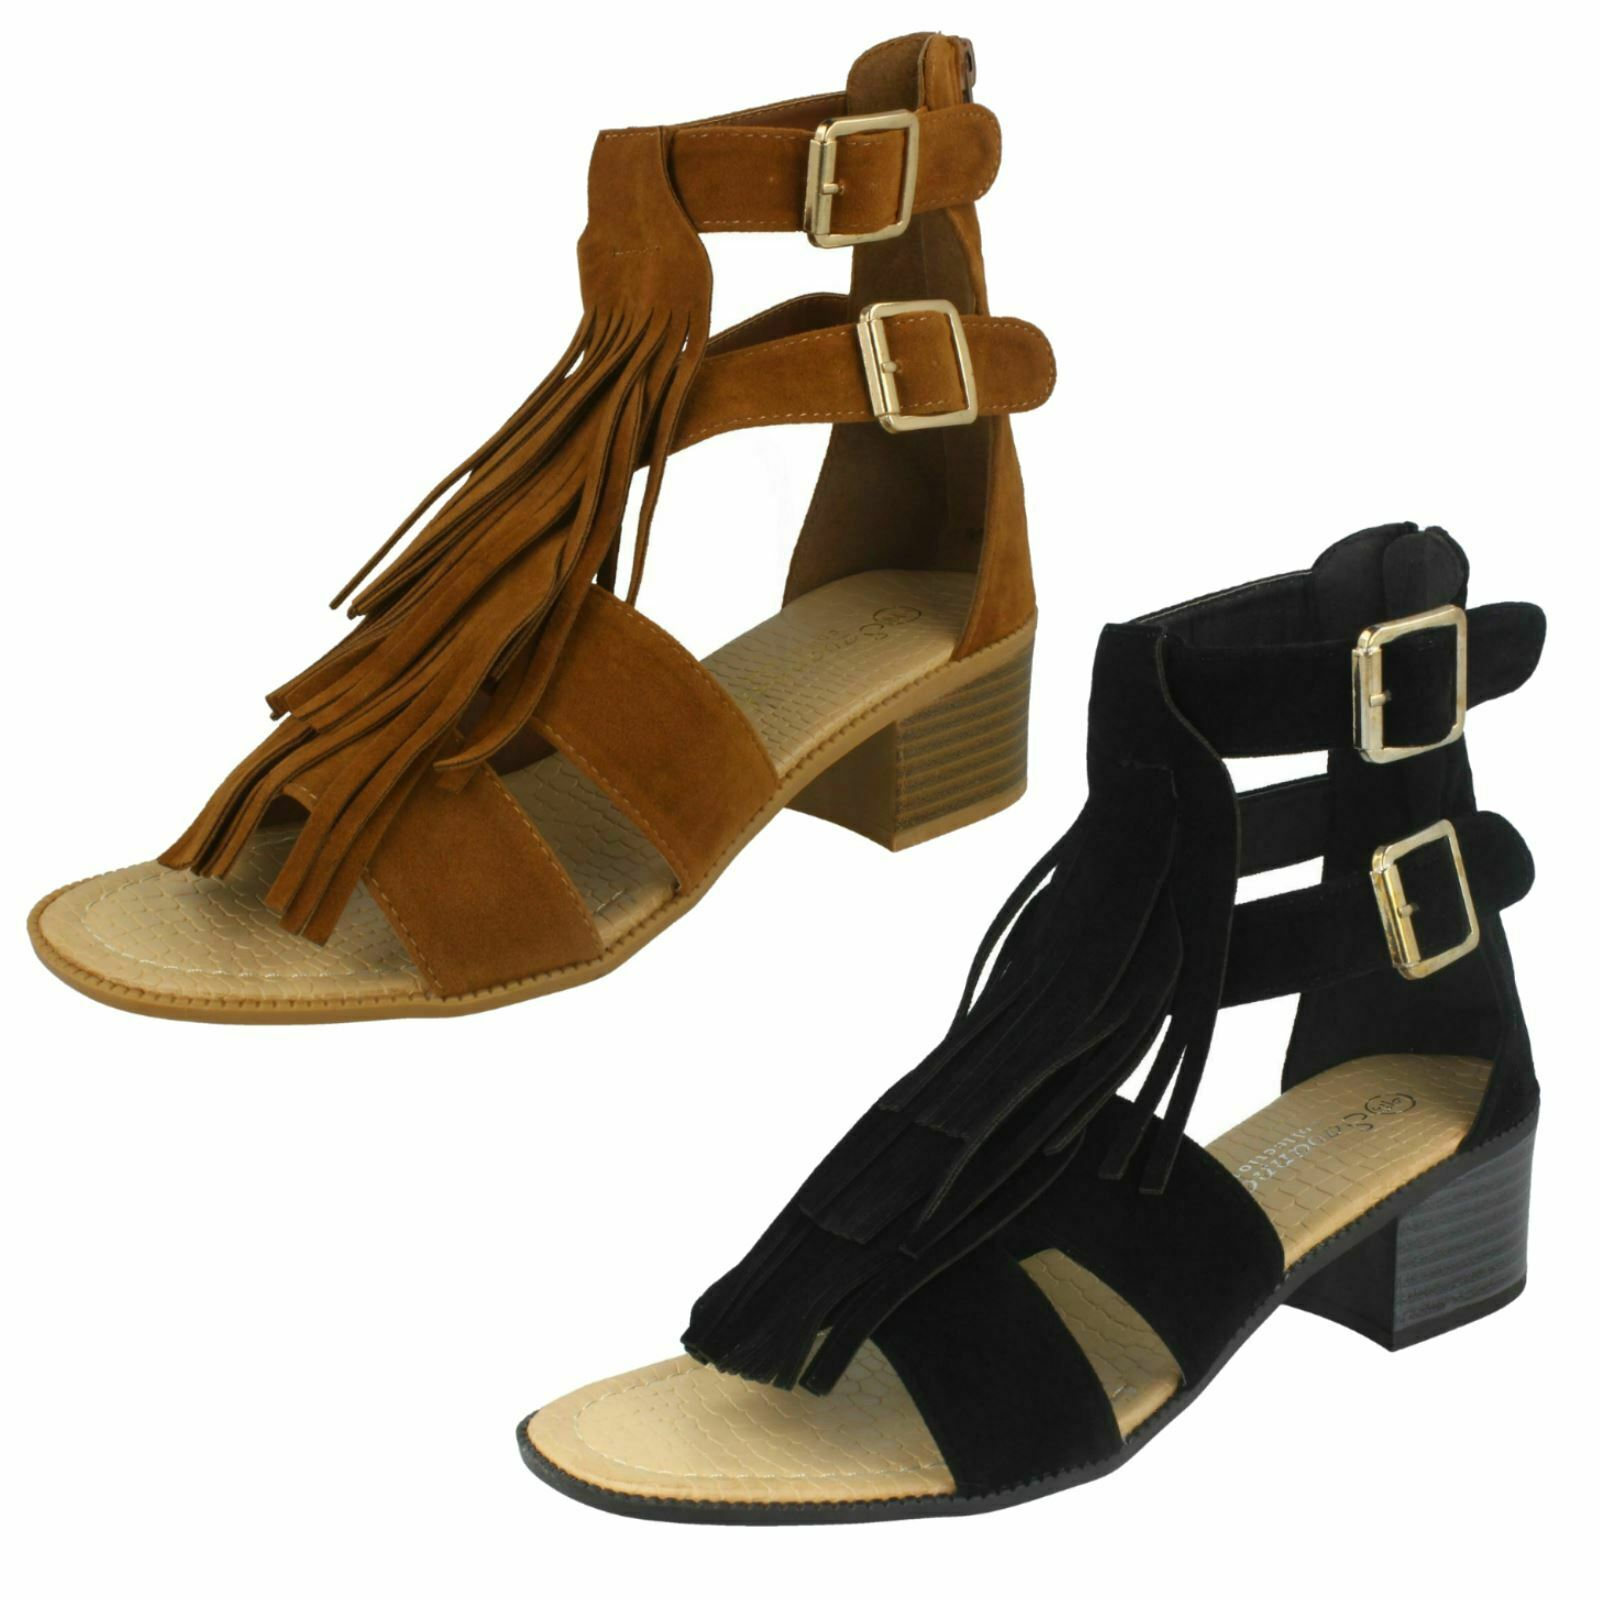 Savannah Ladies Fringe Sandal Heel